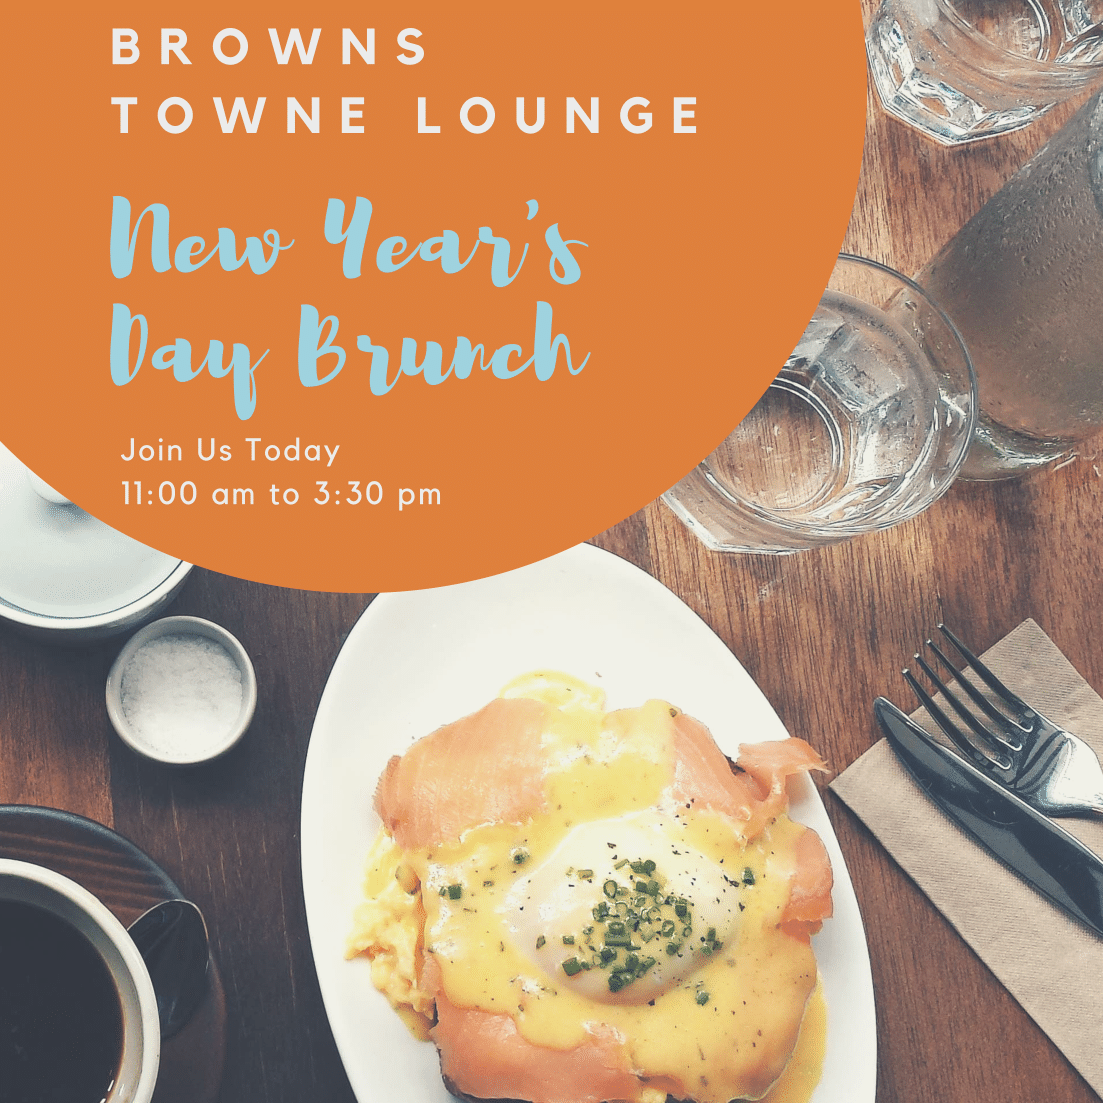 The best way to spend the first day of 2019 is with a delicious meal you don't have to prepare yourself! Join us today from 11:00 am to 3:30 pm for our famous New Year's Day Hangover Brunch featuring all your favorite breakfast and lunch bites including omelettes, slow-roasted prime rib, chicken and waffles, huevos rancheros and so much more! Revitalize and continue the celebration with our Bloody Mary and Mimosa specials starting at $5.50 Brunch for Adults 21 and Up. Seats will fill up fast. HAPPY New Year from Brown's!